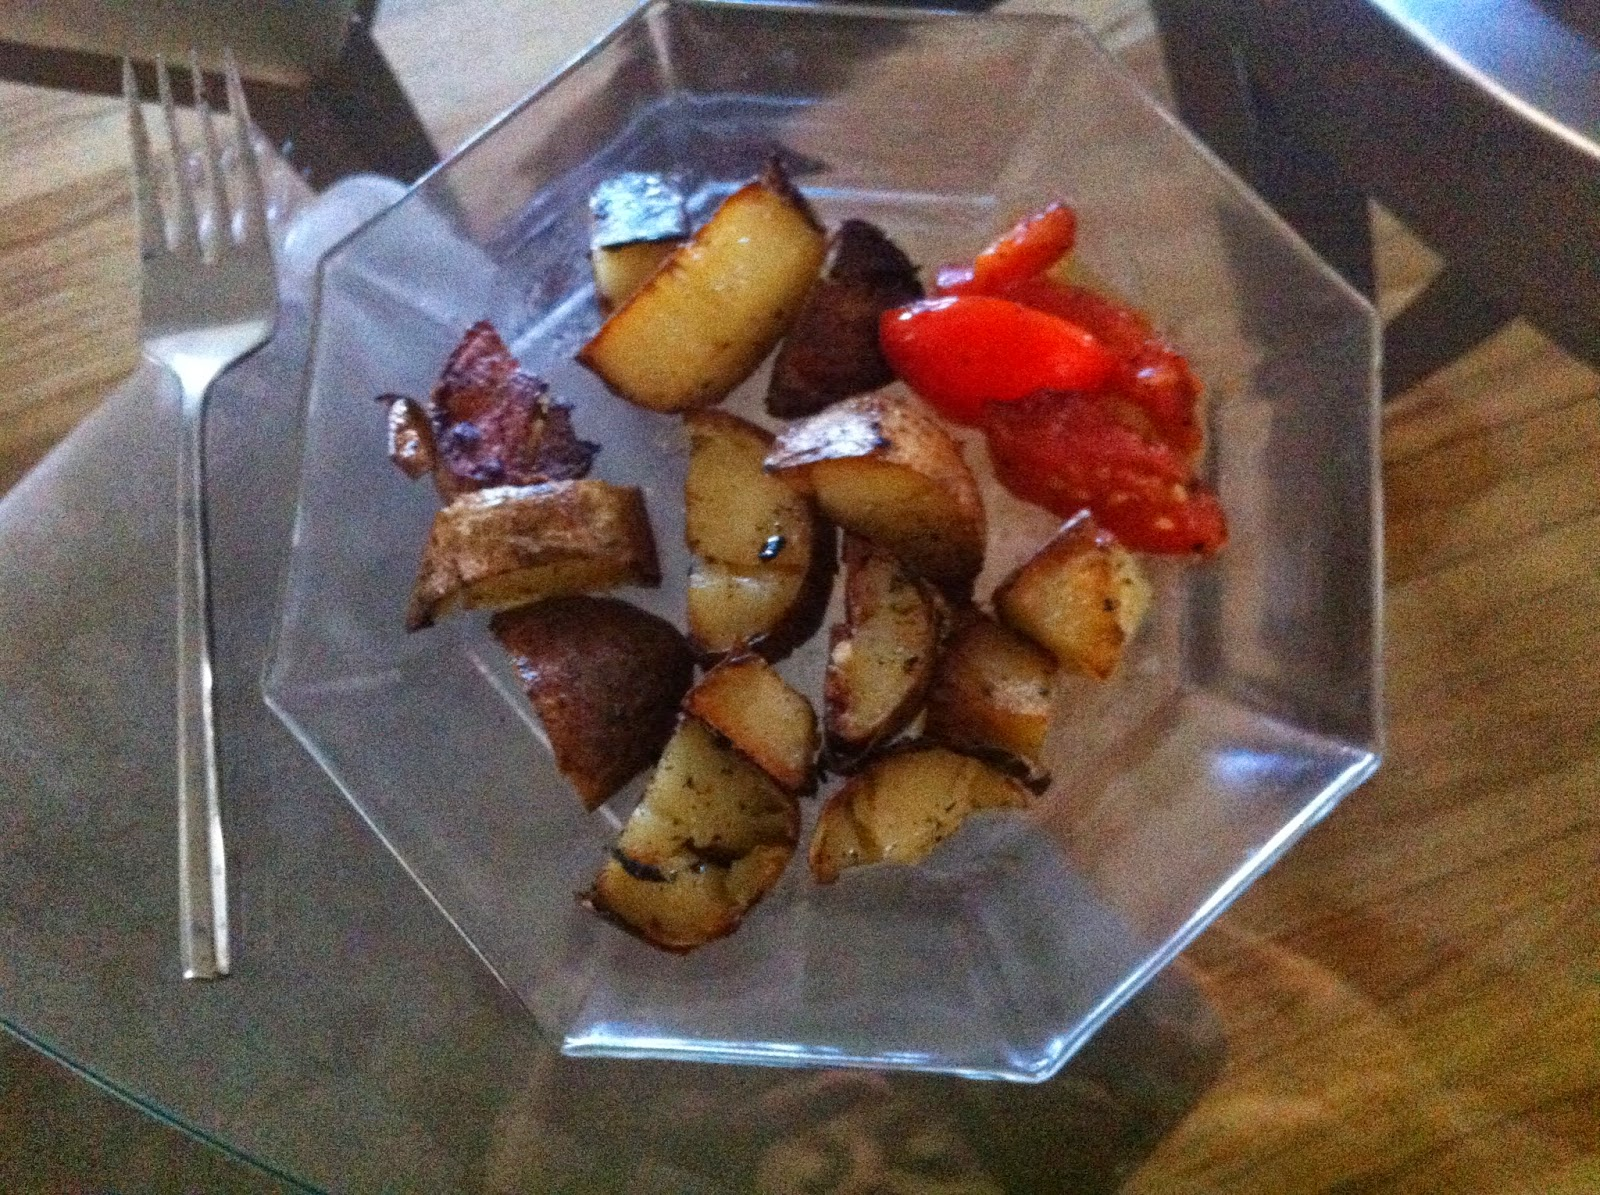 $0.26 breakfast, a small fried potato and tomato